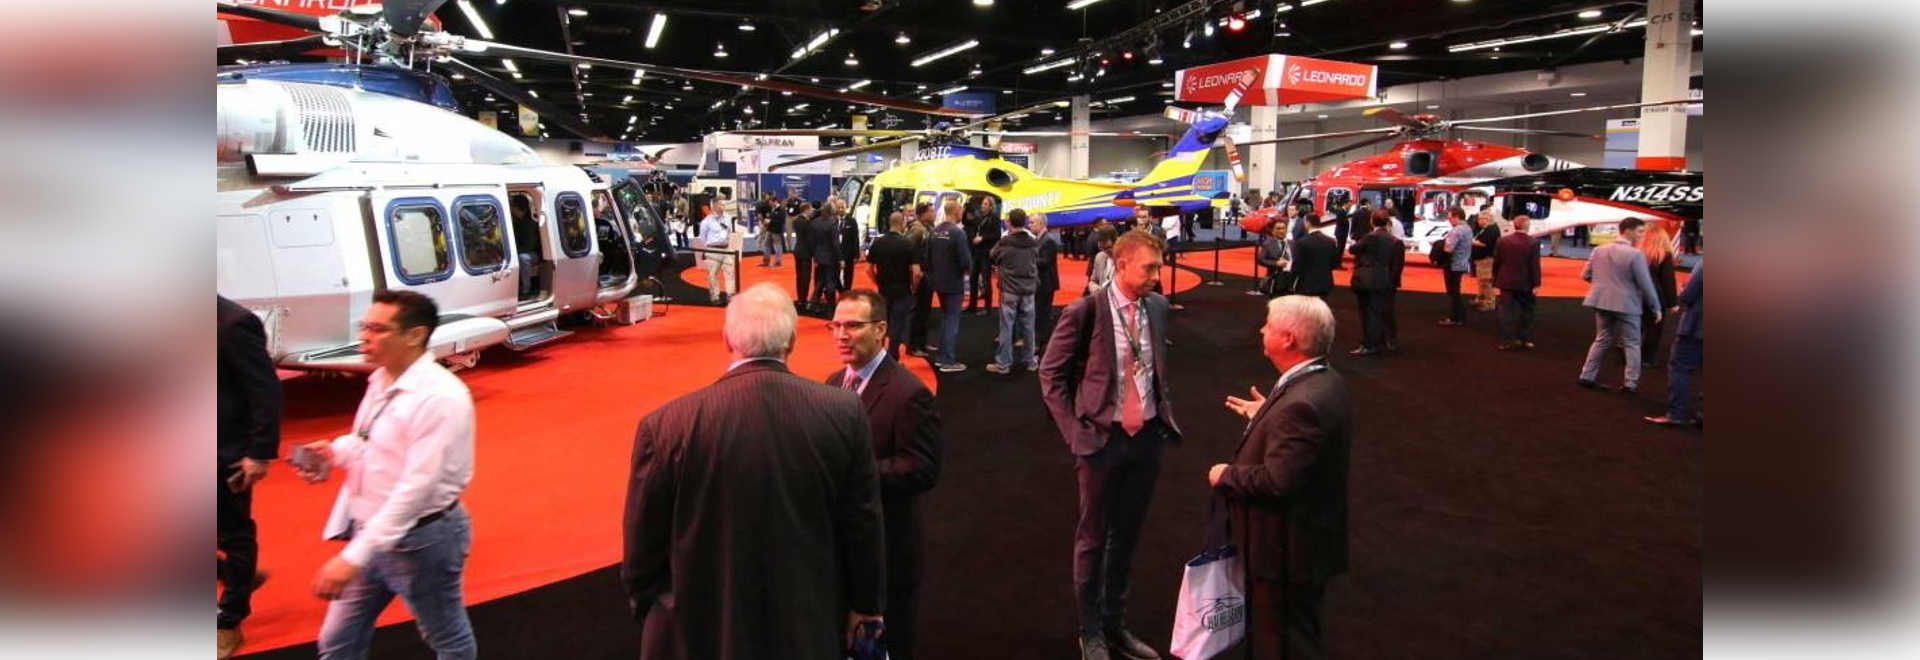 Heli-Expo in January 2020 was among the last pre-Covid aviation shows.